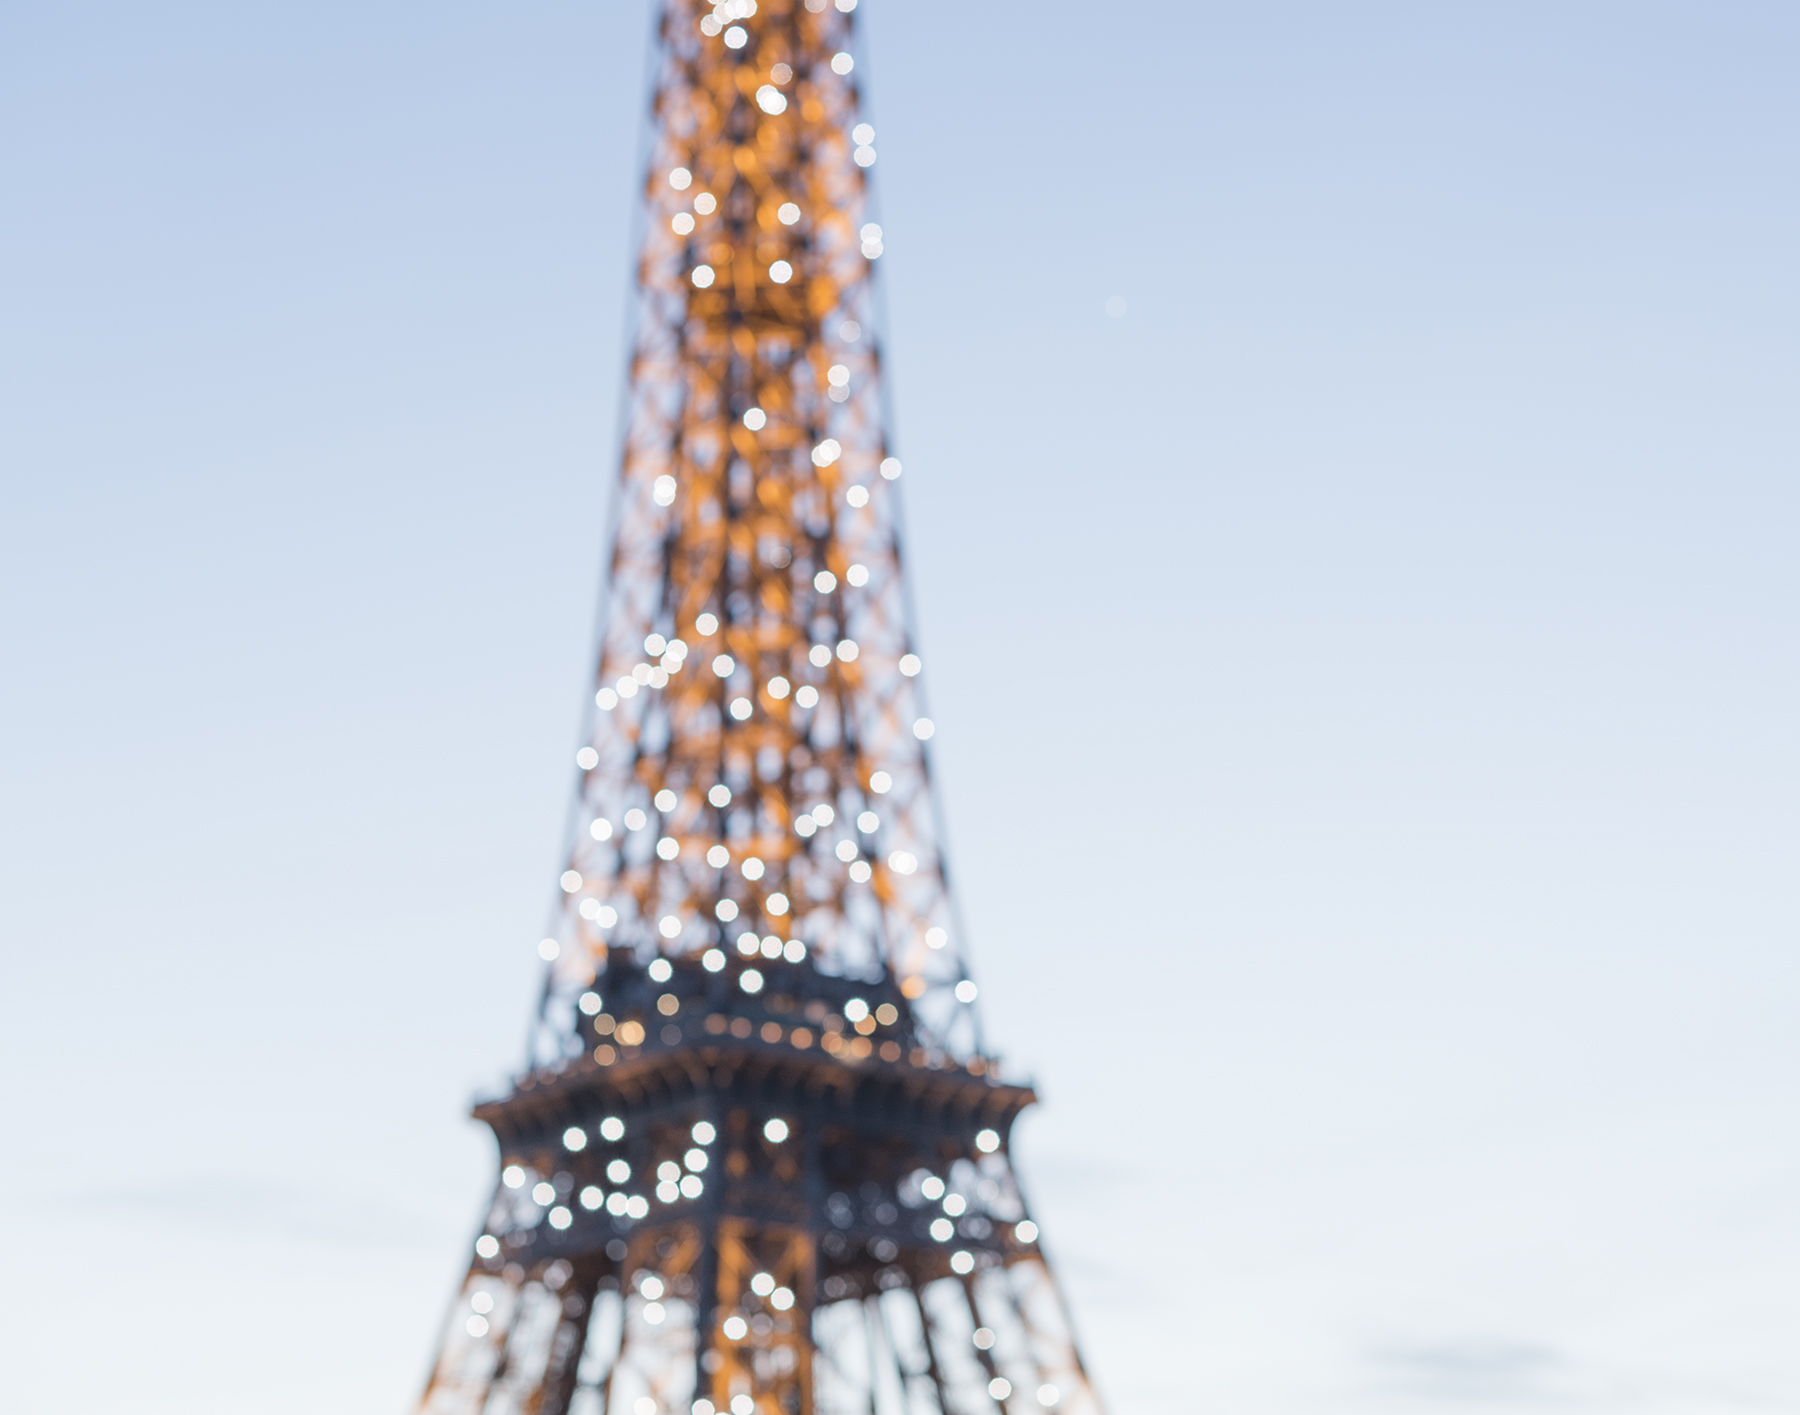 Eiffel Tower at the Paris in Bloom book launch party